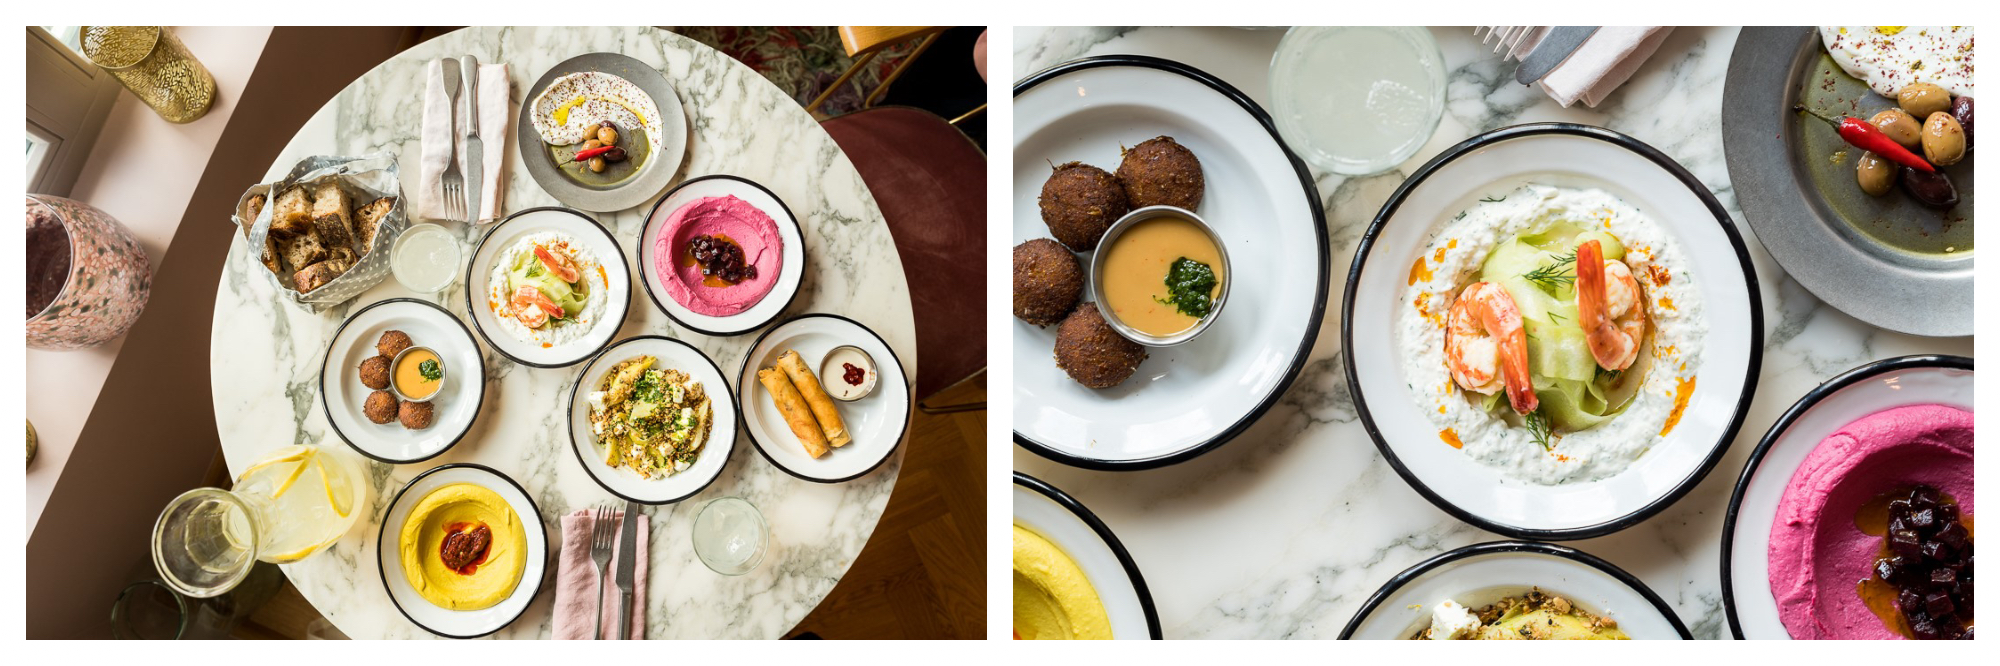 On left: A marbled table is filled with dishes from Neni, an Israeli eatery located in Gare du Nord. On right: Dishes from Neni, an Israeli restaurant in Paris' Gare du Nord, feature beet hummus and crispy falafel.